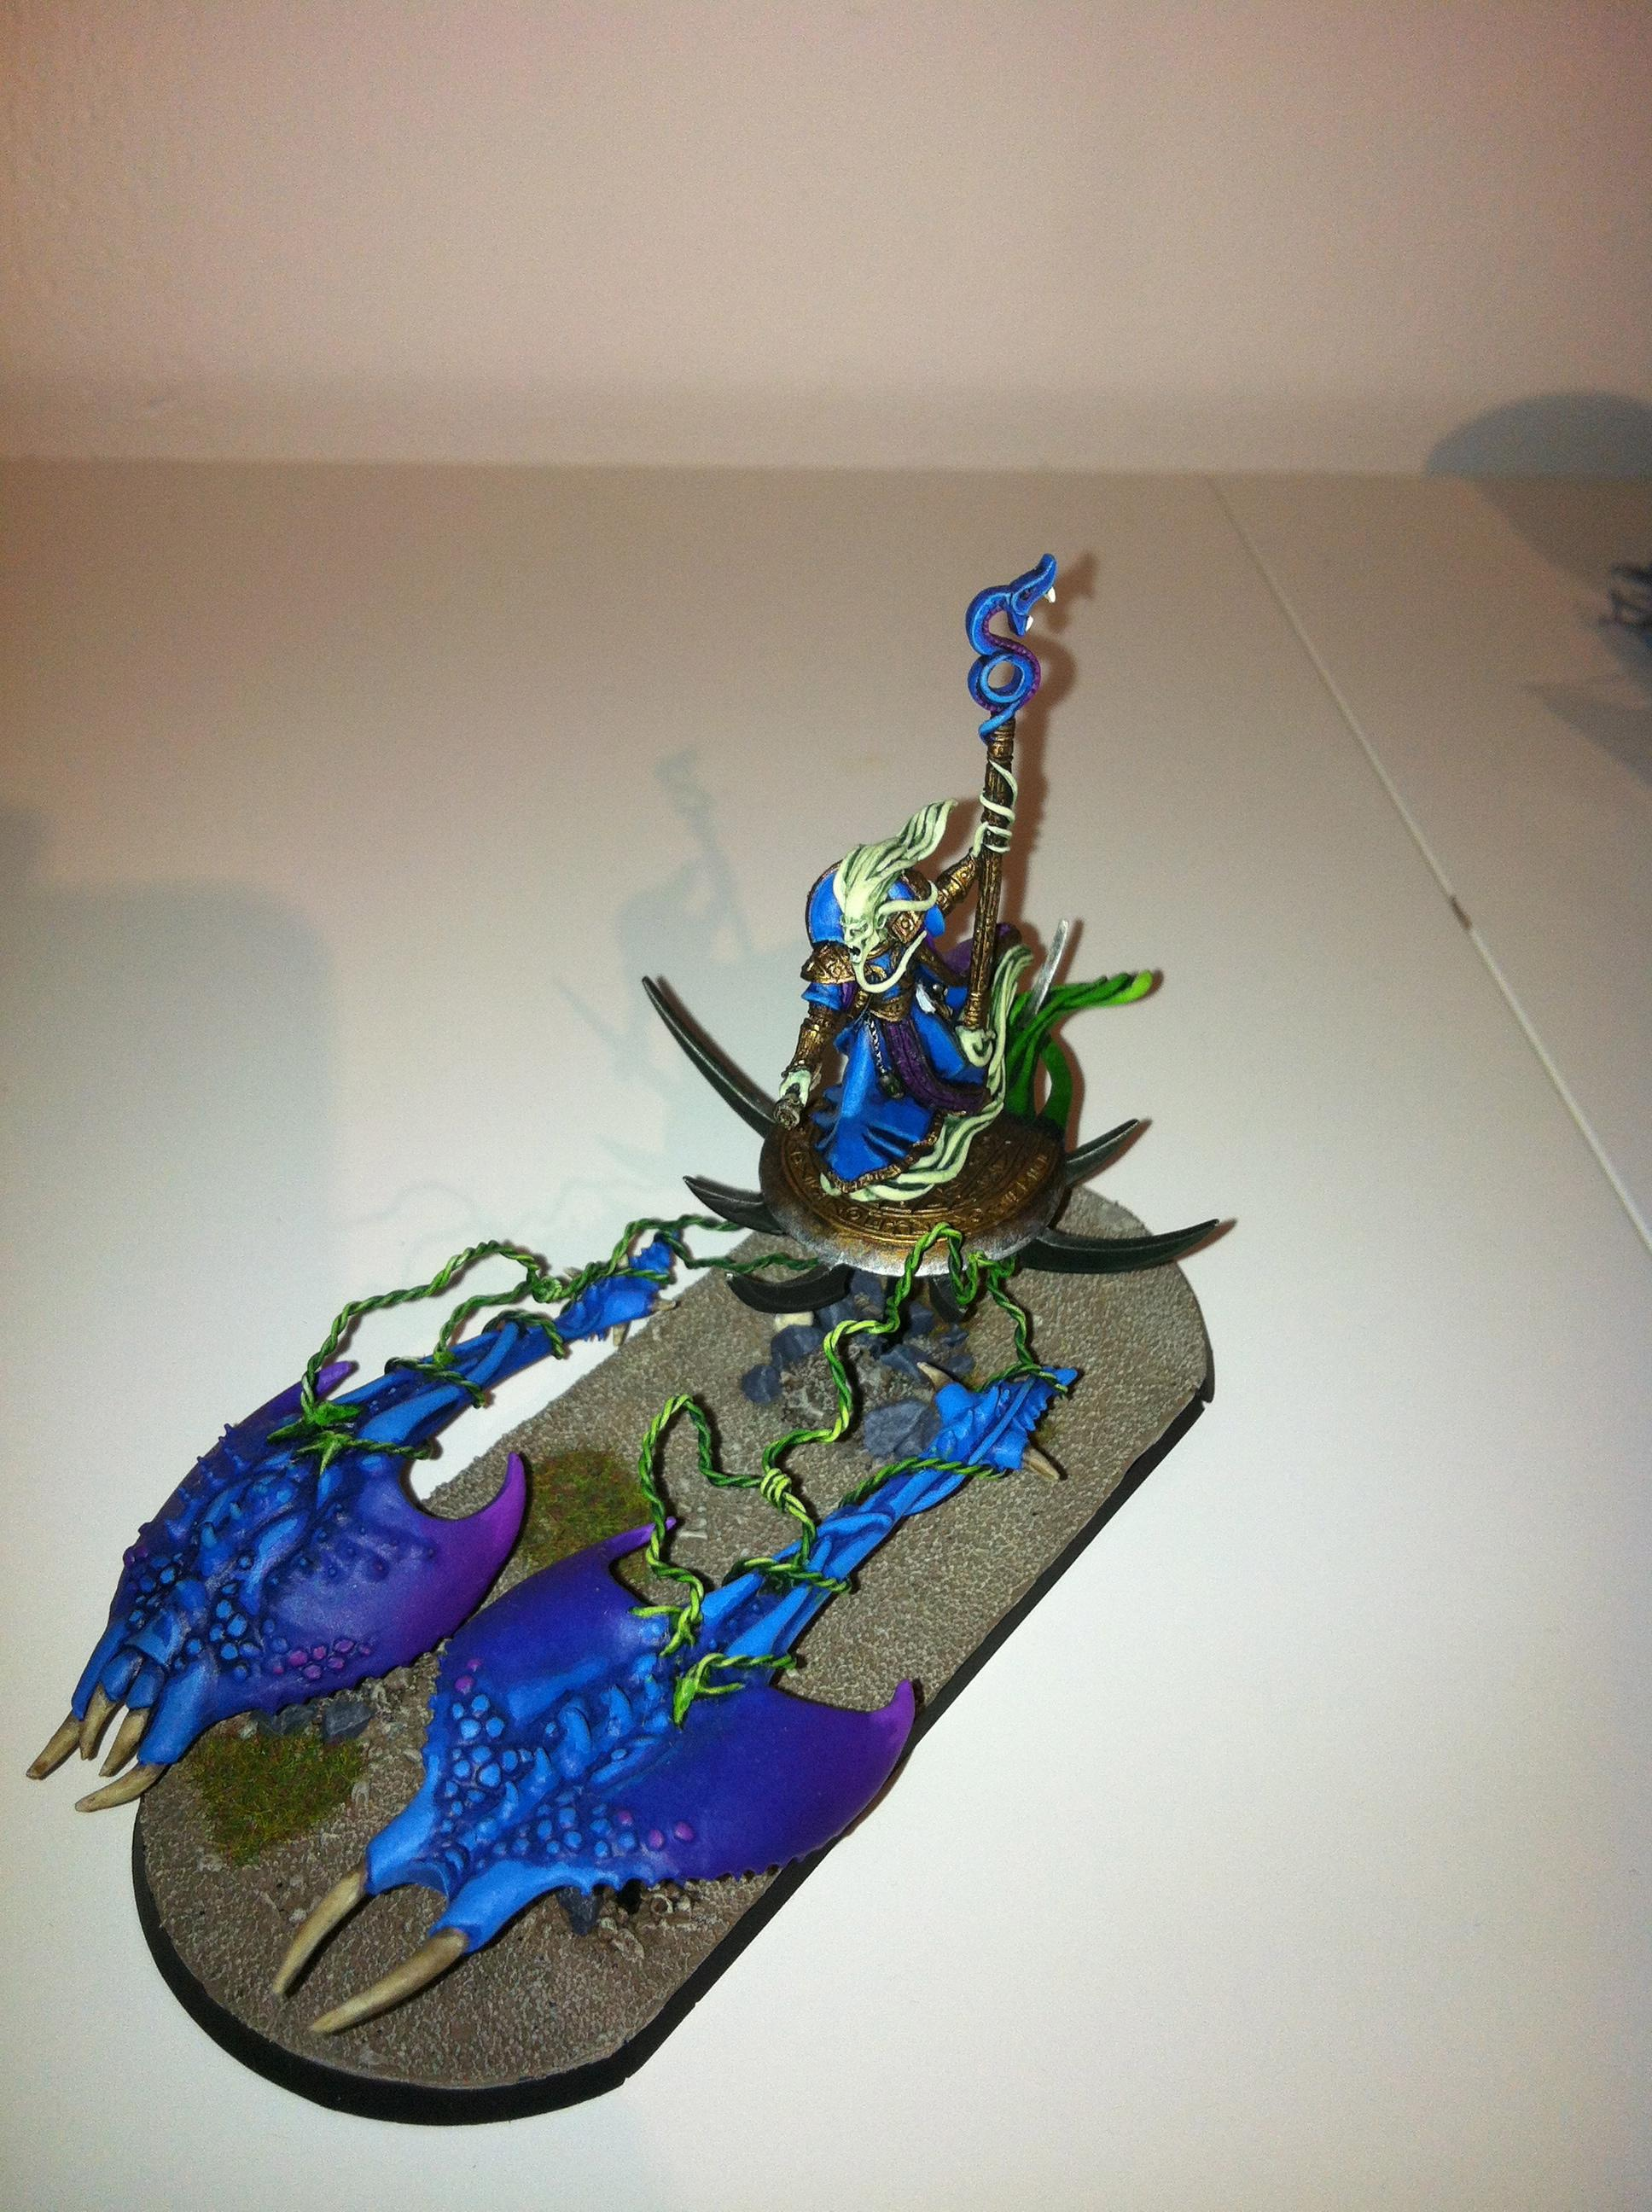 Tzerald on Chariot - N'zall (the Twisted)